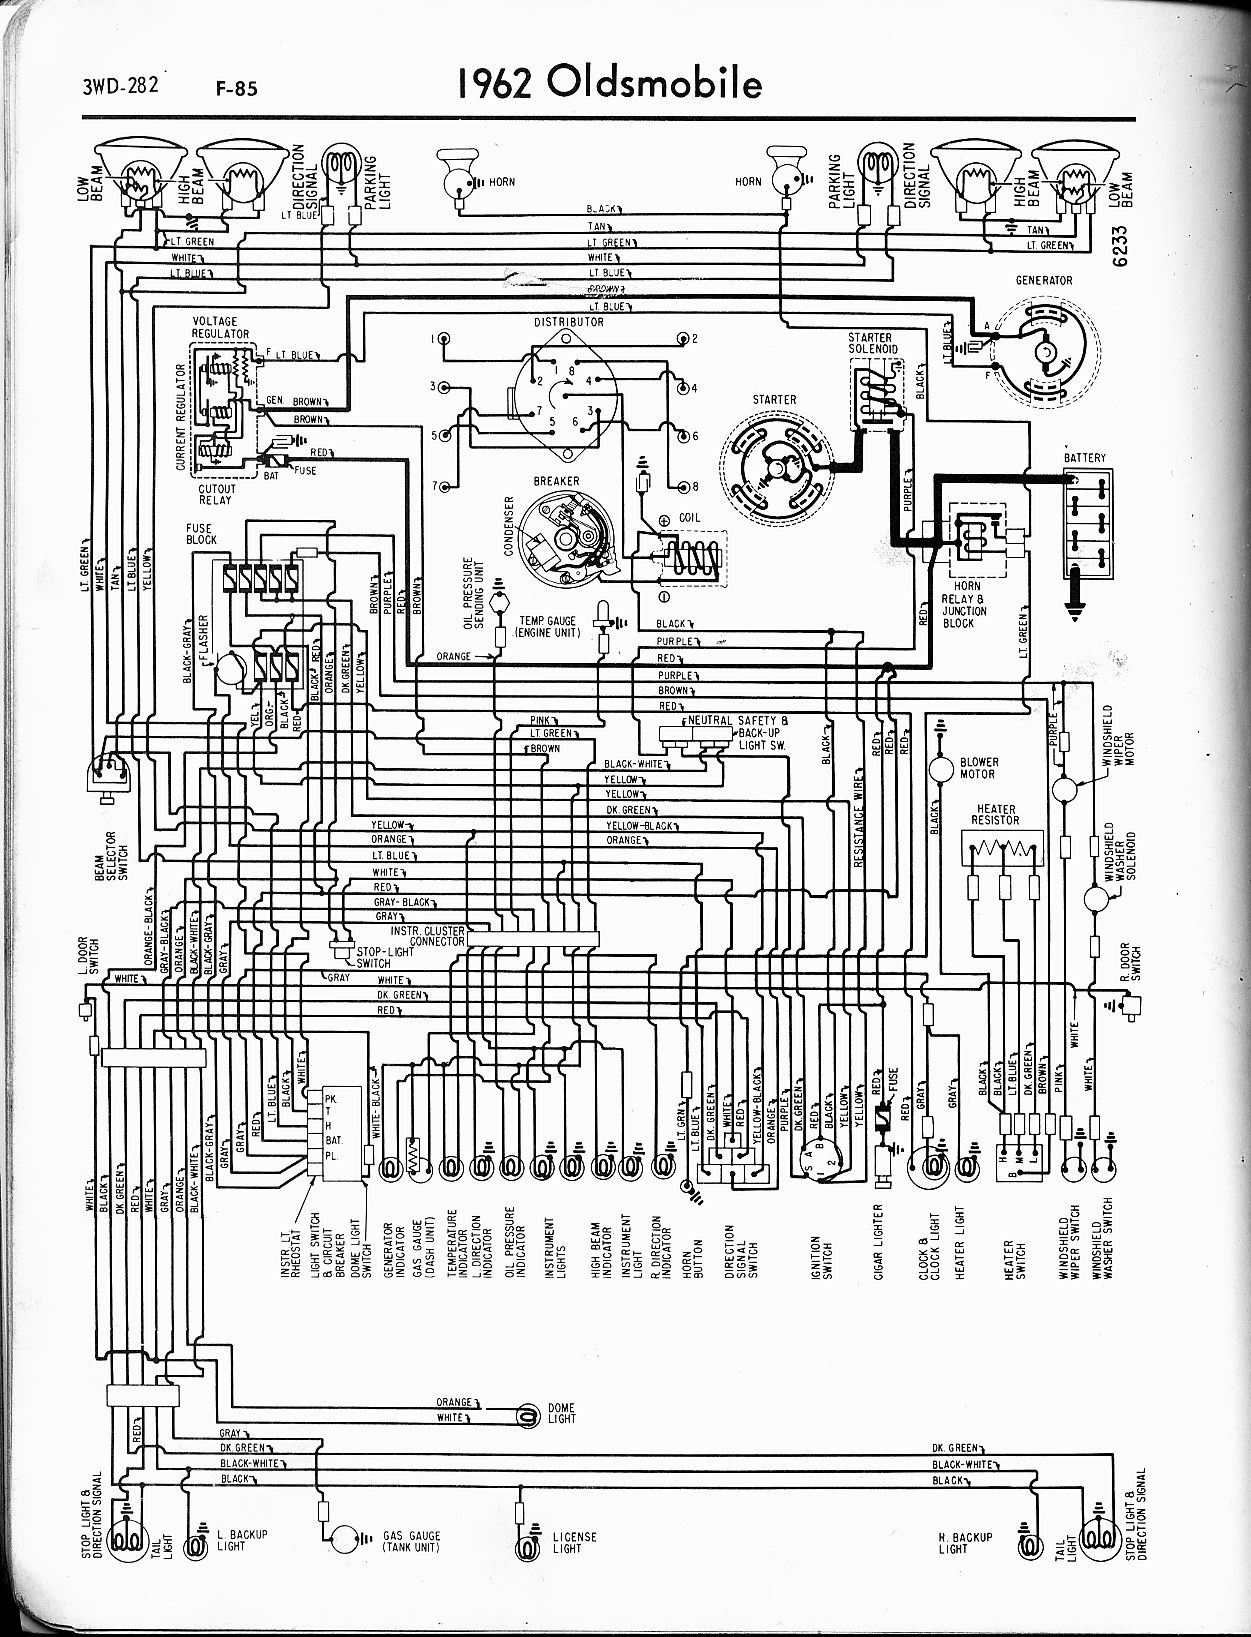 MWire5765 282 oldsmobile wiring diagrams the old car manual project Basic Turn Signal Wiring Diagram at n-0.co